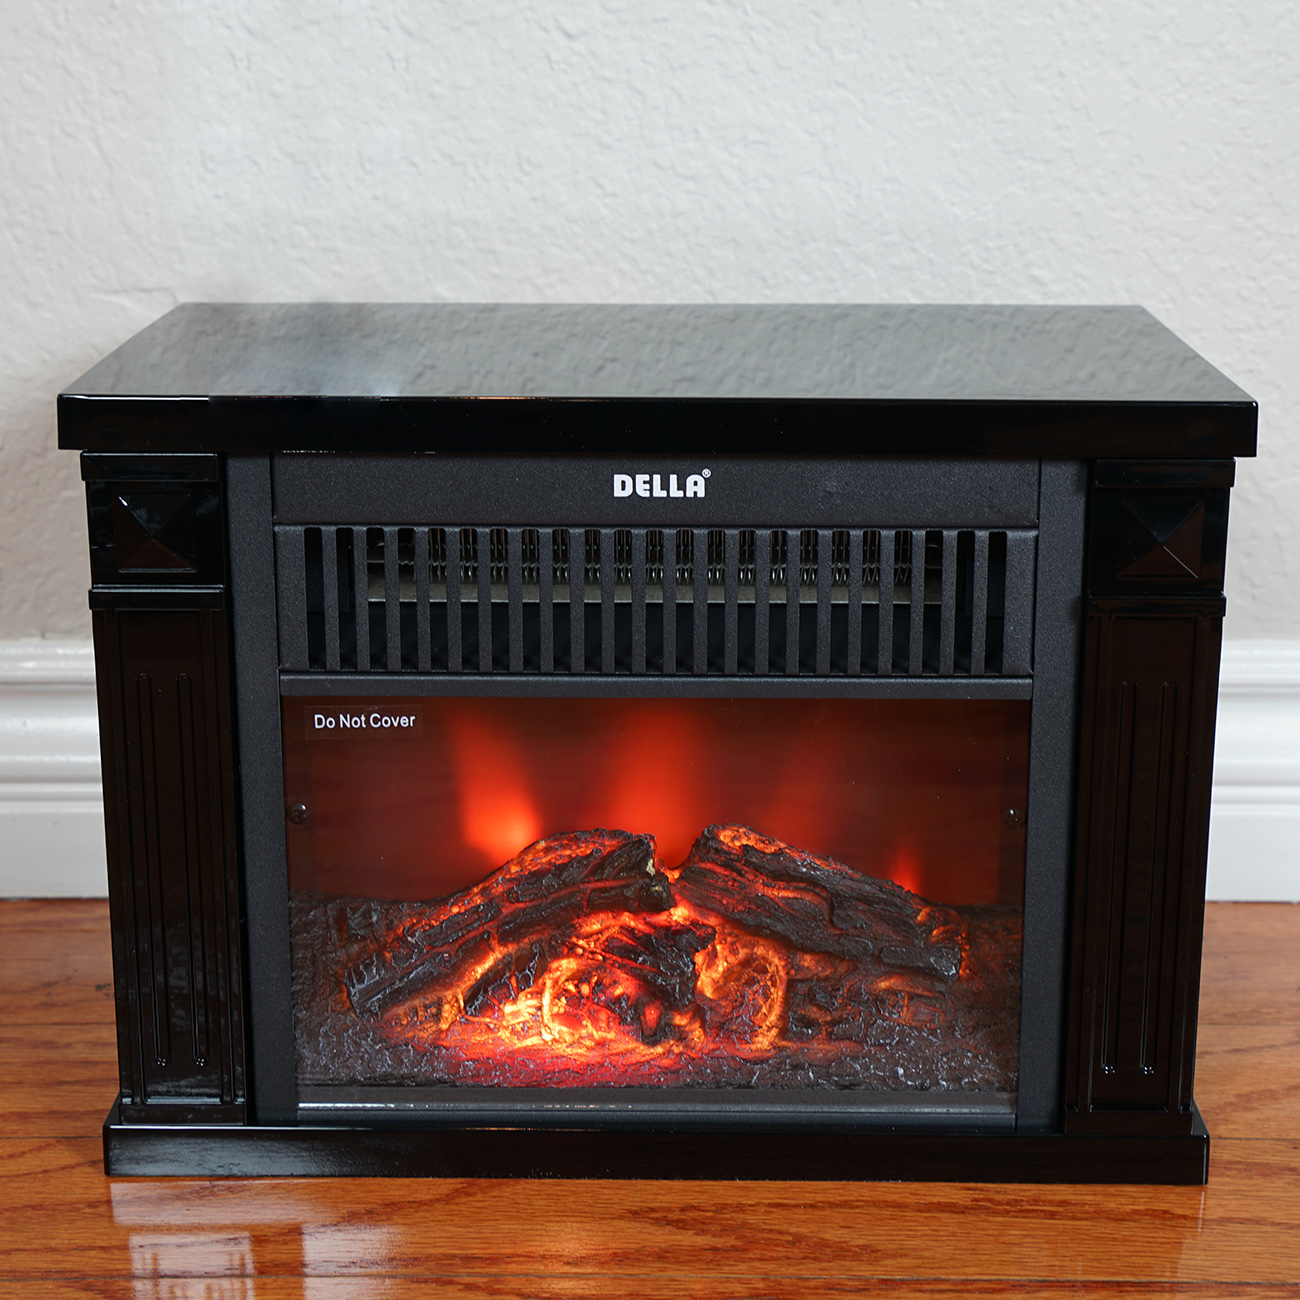 tabletop infrared space heater flame effect portable mini electric fireplace new 89301708006 ebay. Black Bedroom Furniture Sets. Home Design Ideas